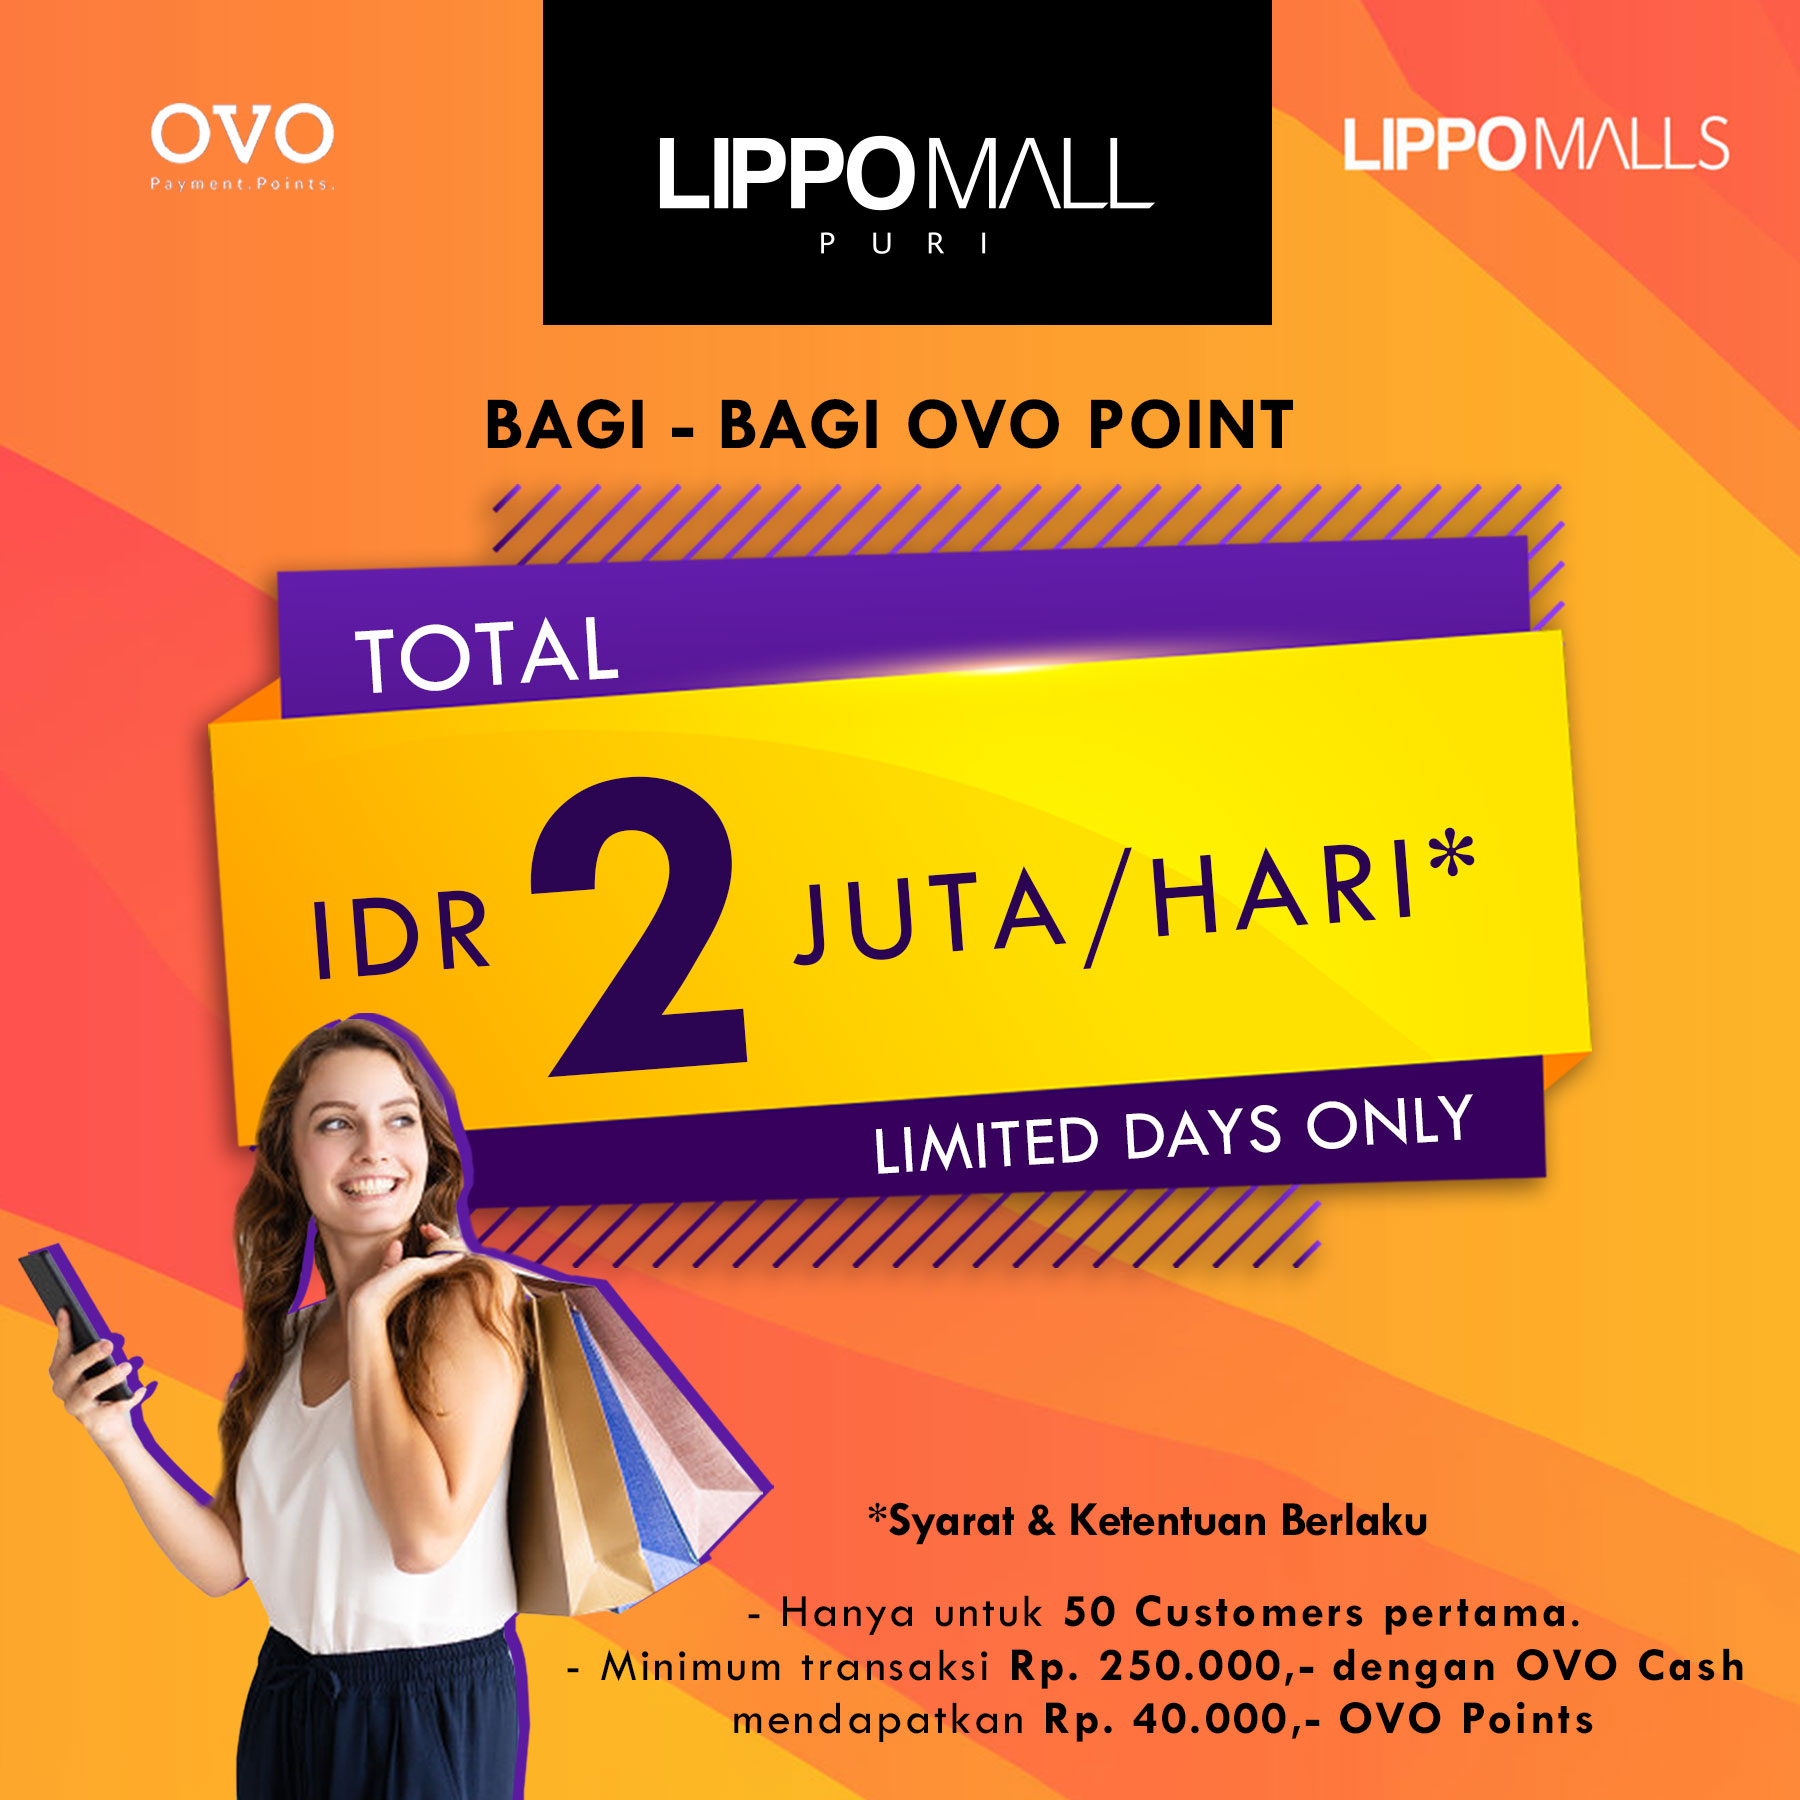 Get OVO Point in lippo mall puri st. moritz